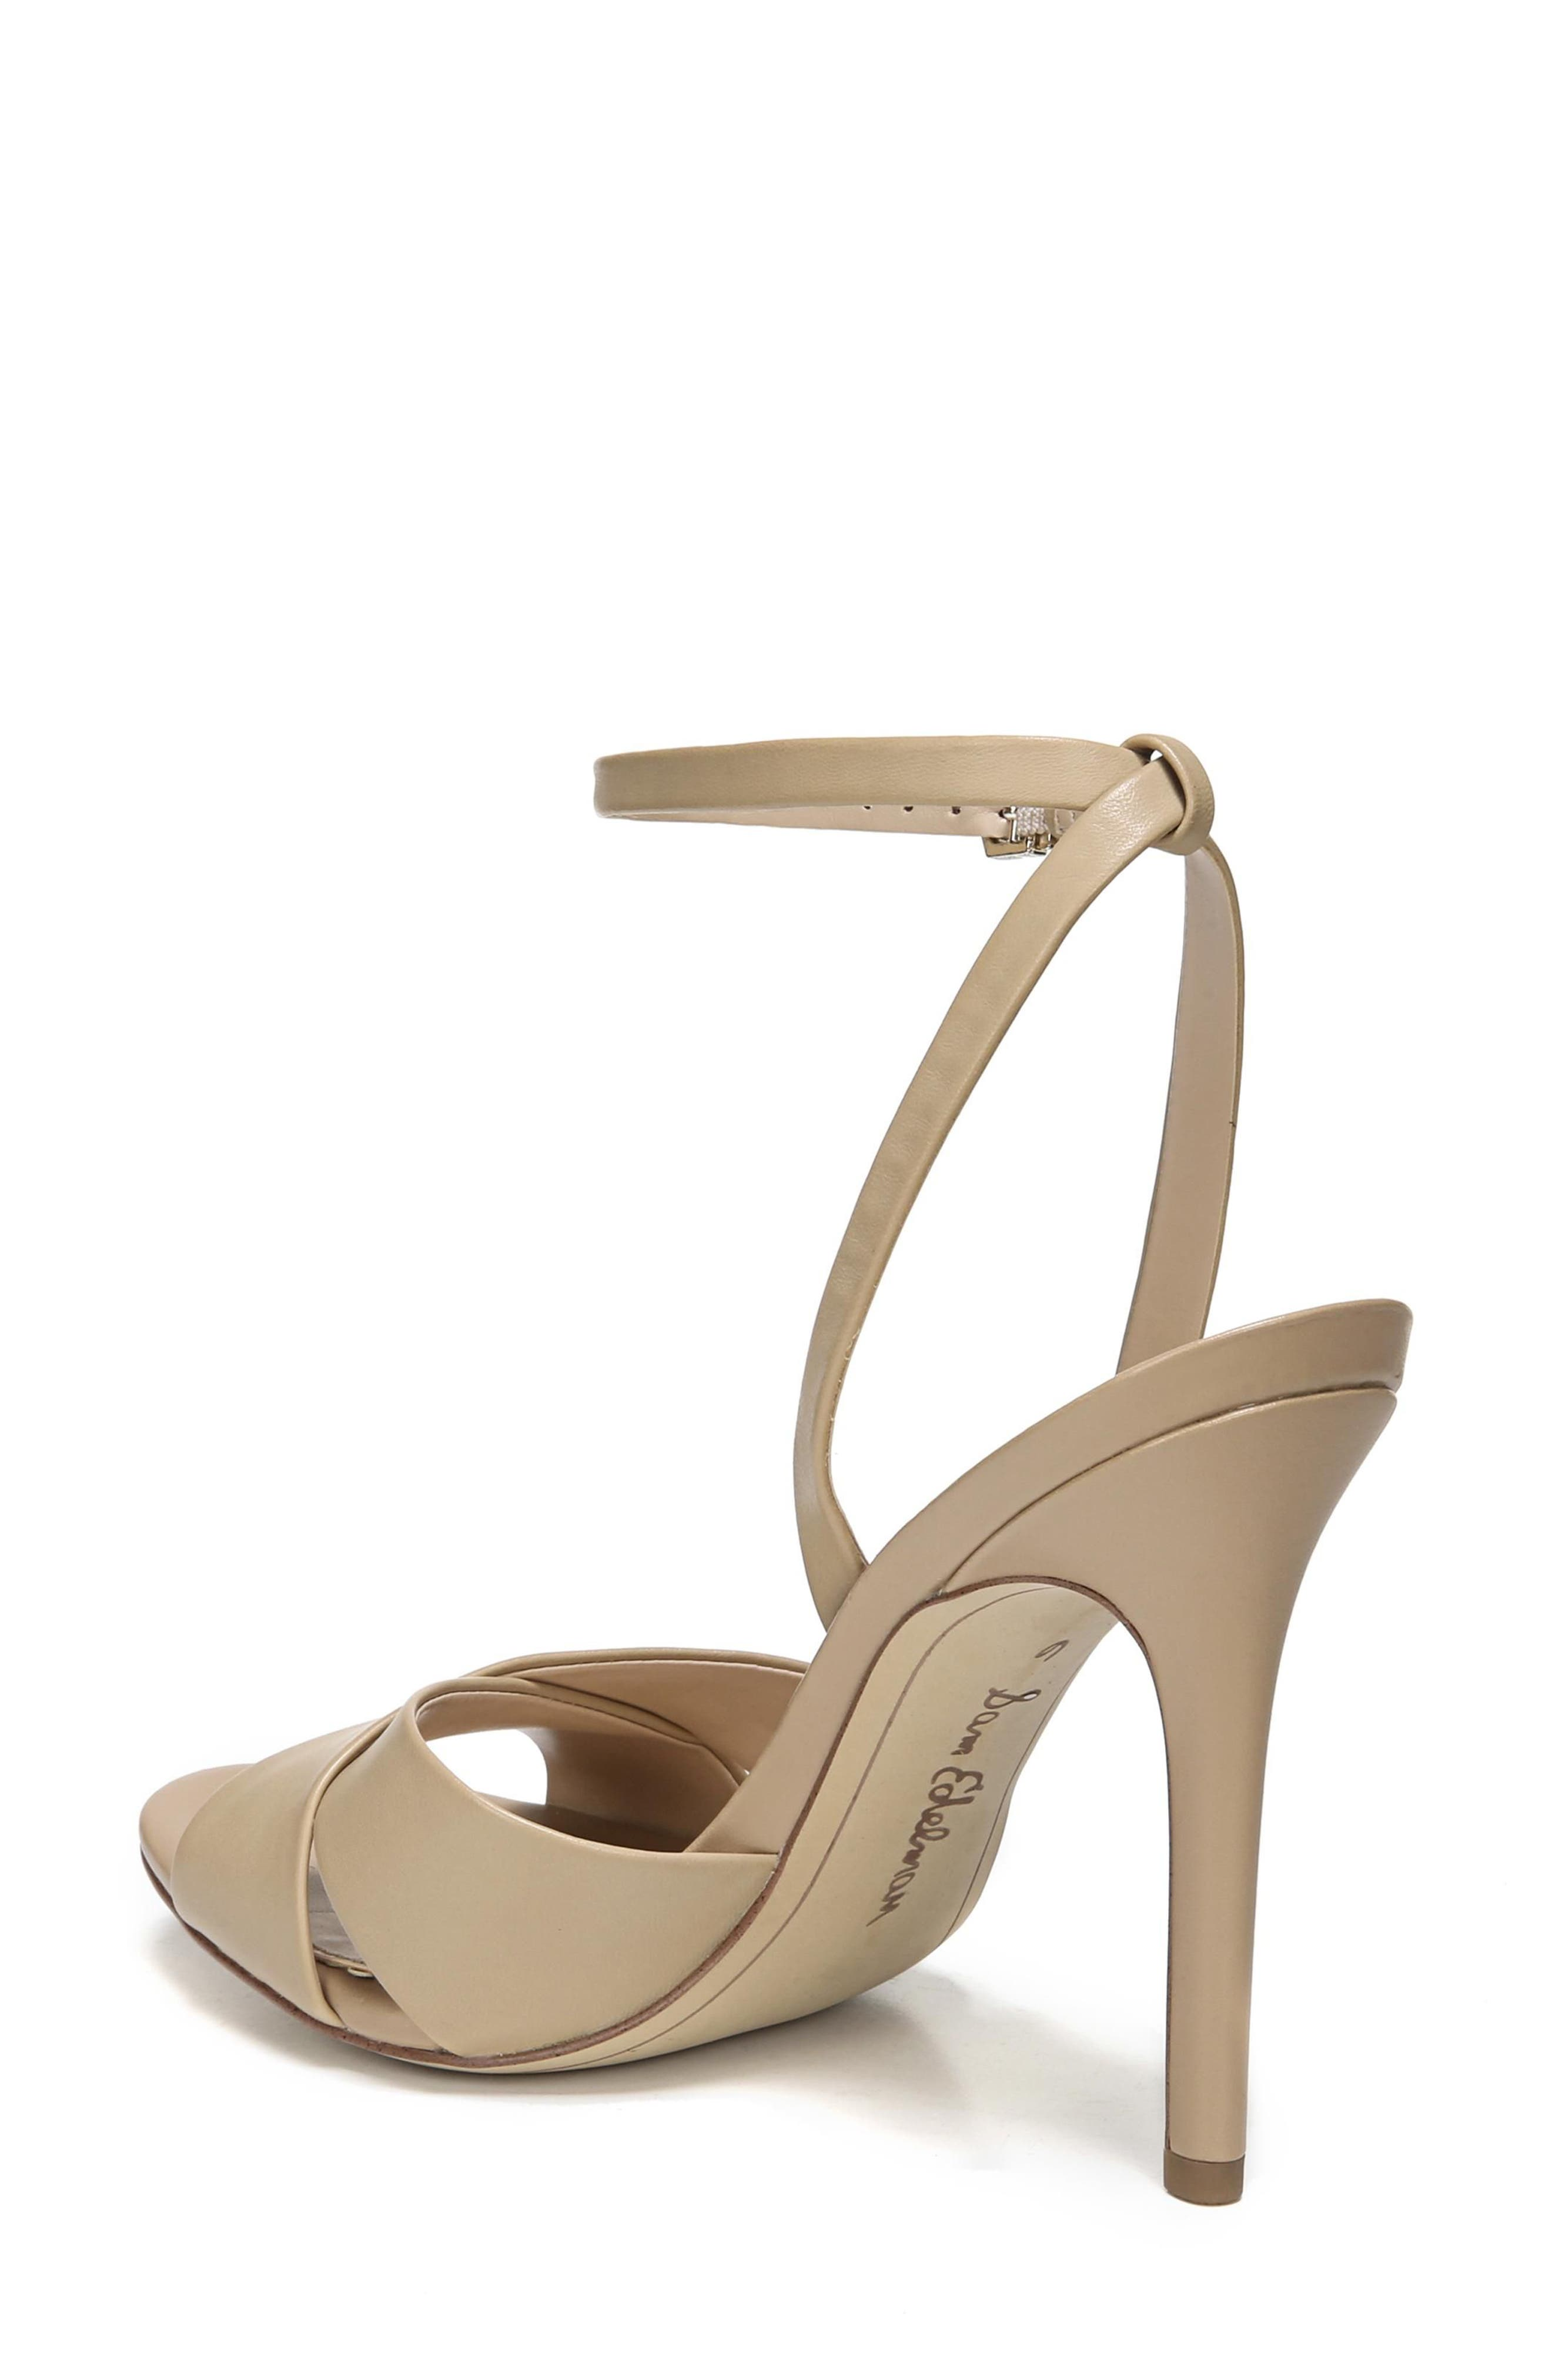 Aly Ankle Strap Sandal,                             Alternate thumbnail 2, color,                             Classic Nude Leather